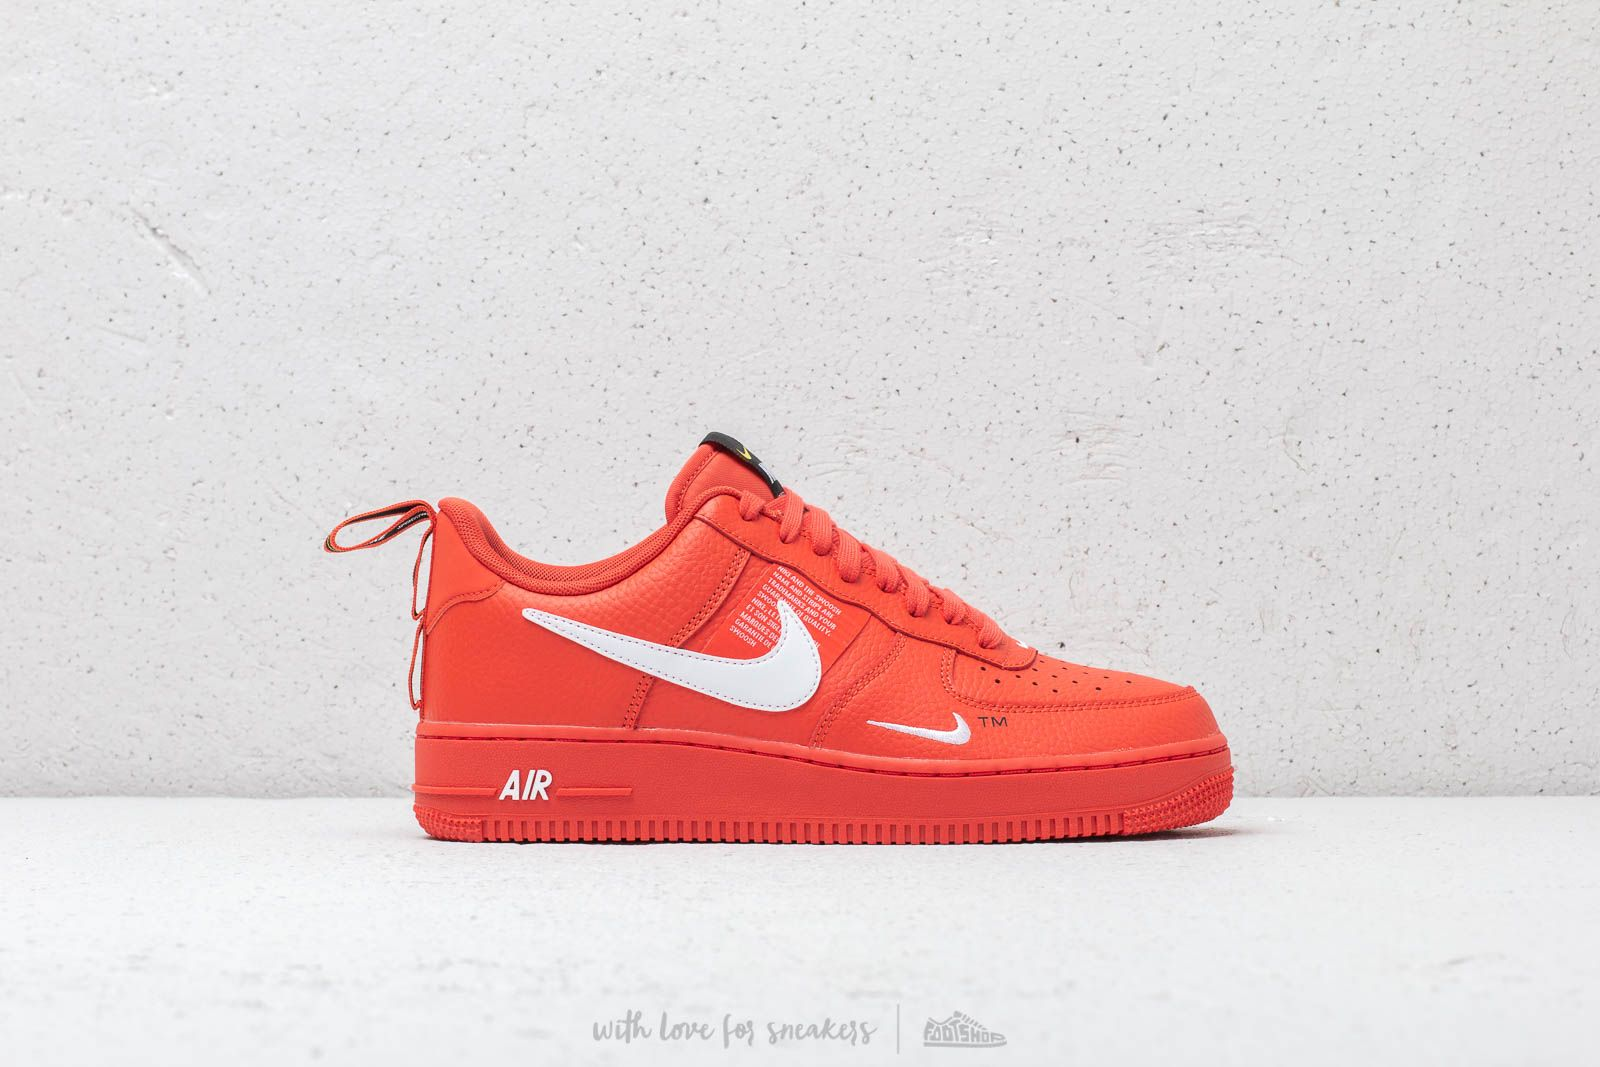 Nike Air Force 1 '07 LV 8 Utility Team Orange White Black